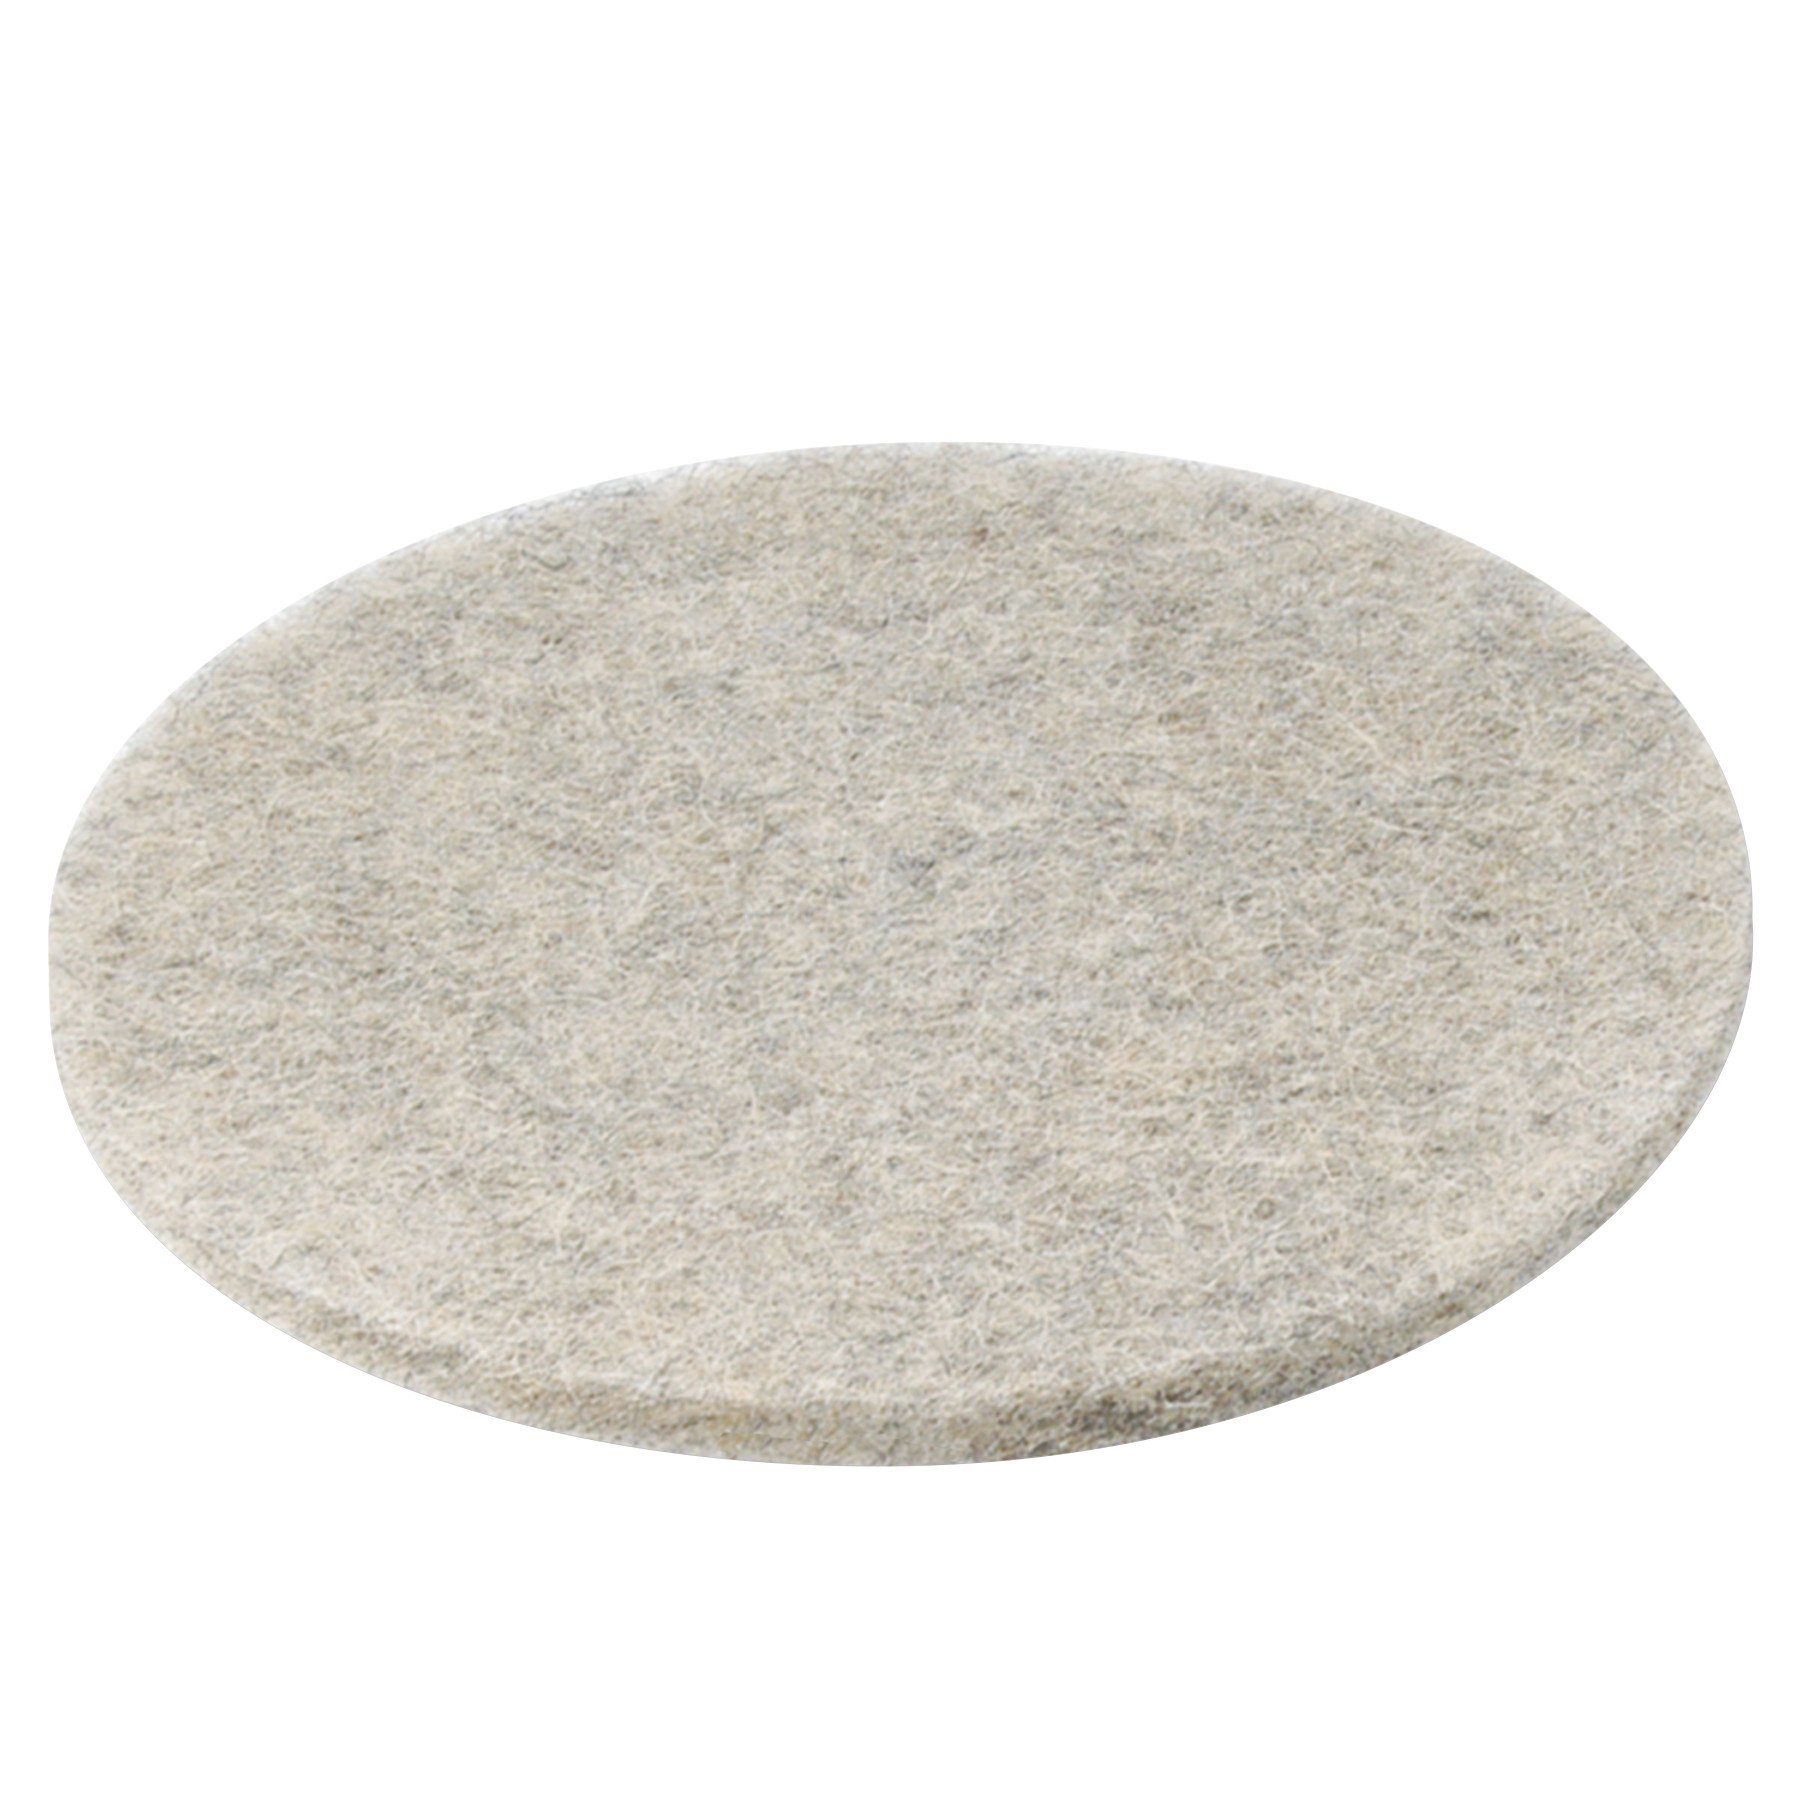 Boardwalk 4020NHE Natural Hair Extra High-Speed Floor Pads, Natural, 20'' Diameter (Case of 5) by Premiere Pads